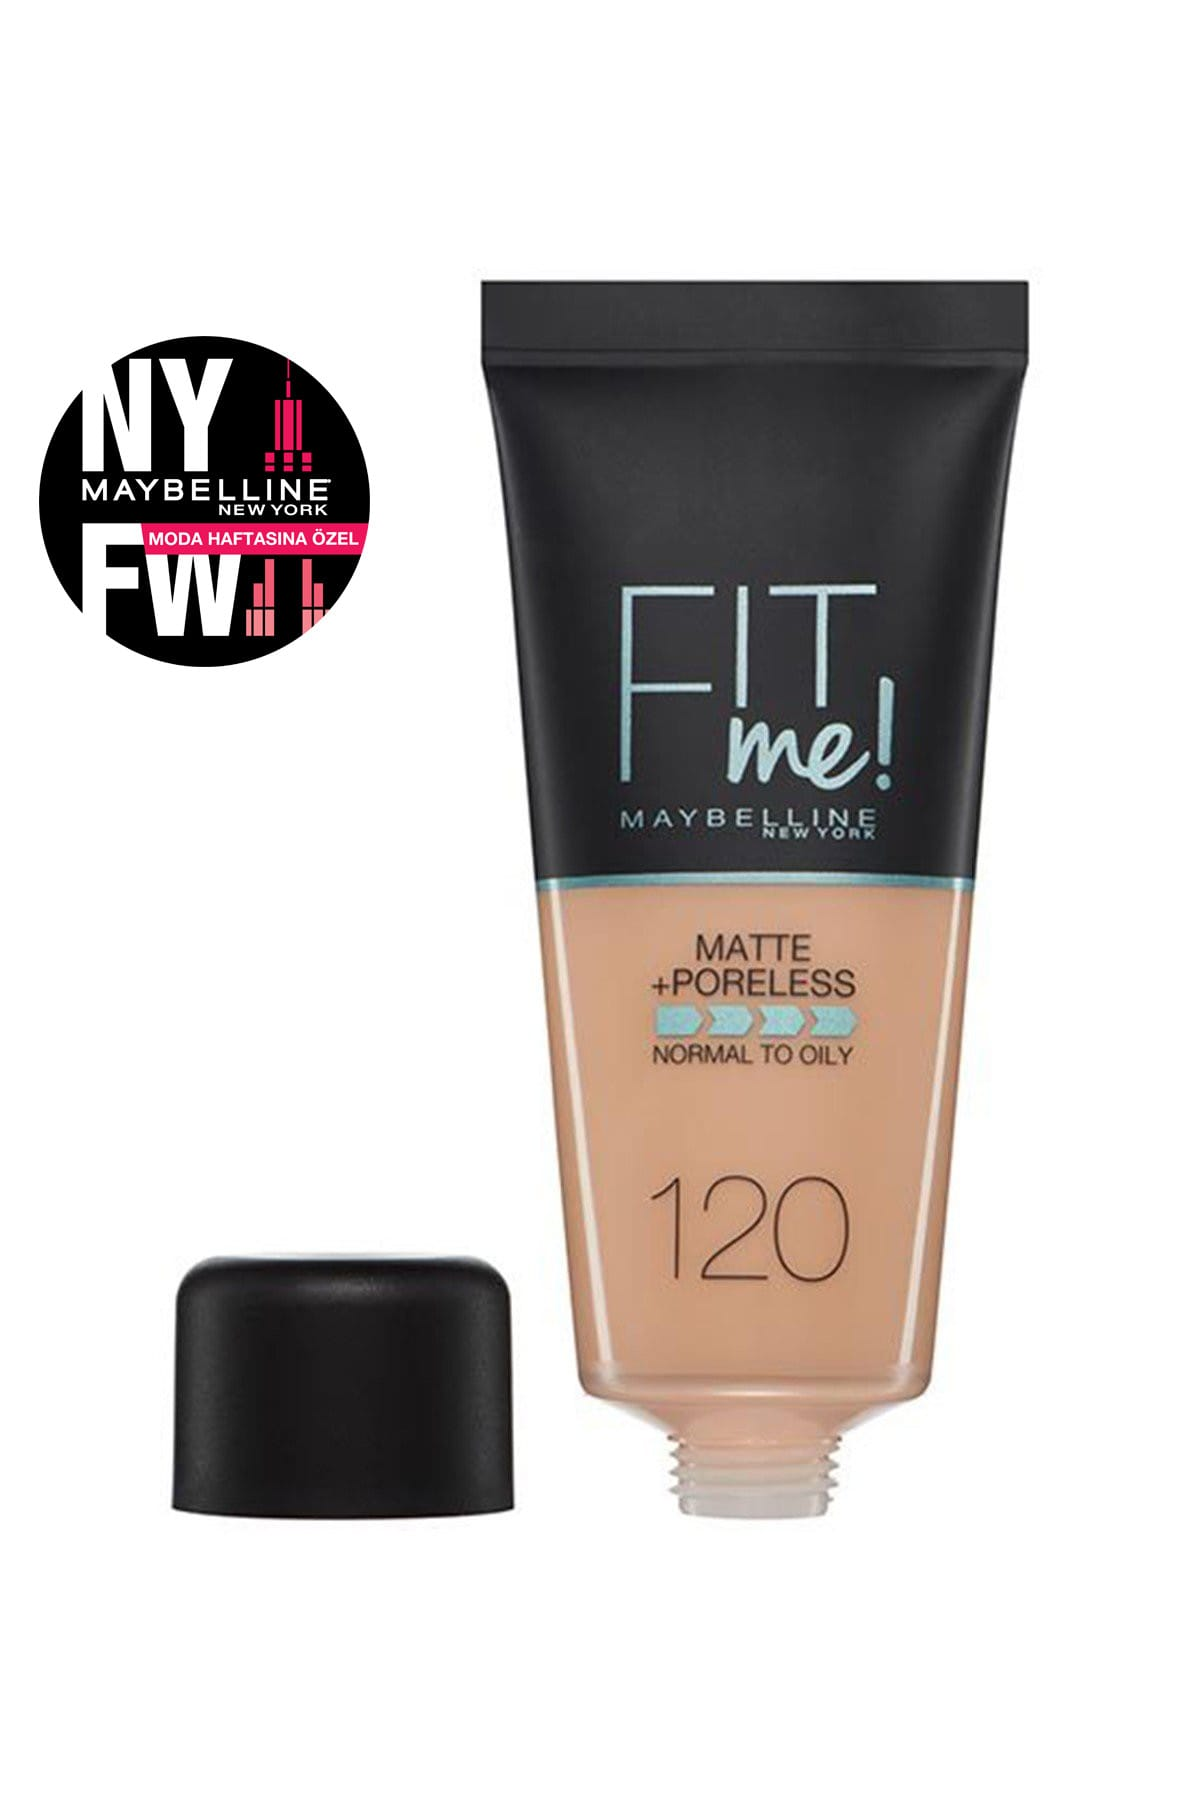 Maybelline New York Fondöten – Fit Me Matte + Poreless Foundation 120 Classic Ivory 30 Ml 3600531324520 – 29.99 TL